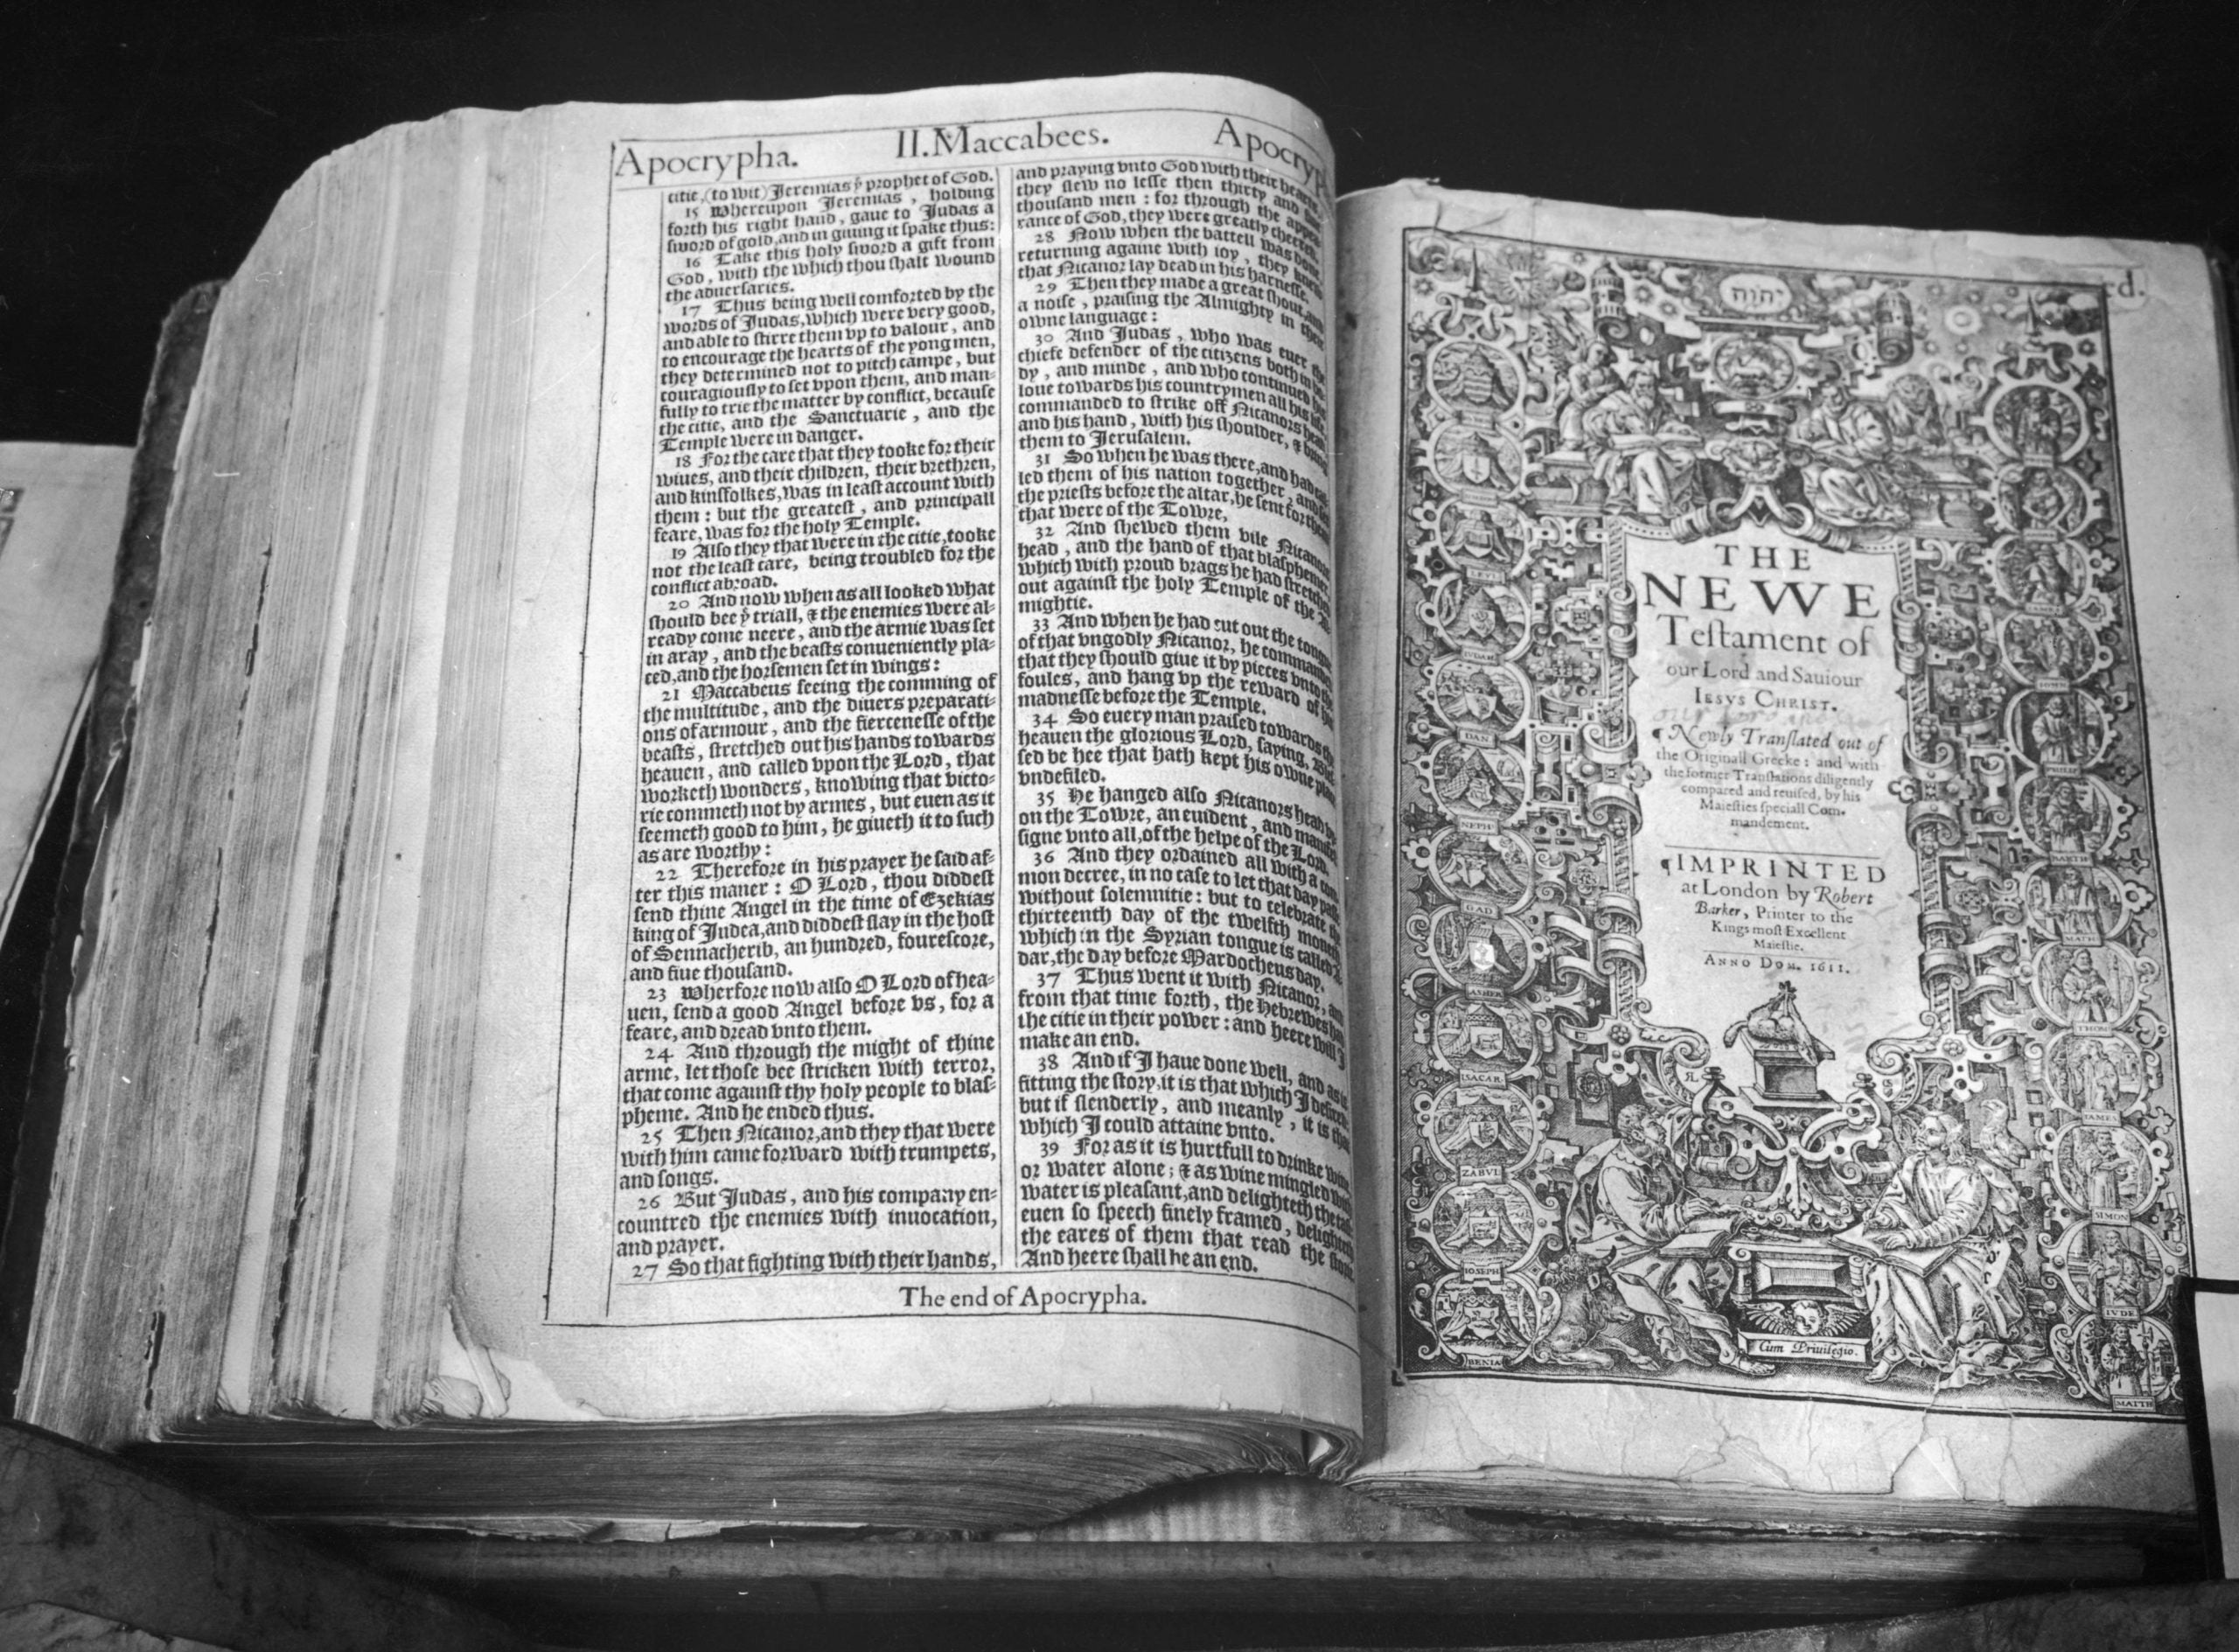 The bloody history of the Bible: why owning, printing or even reading the word of God could be lethal